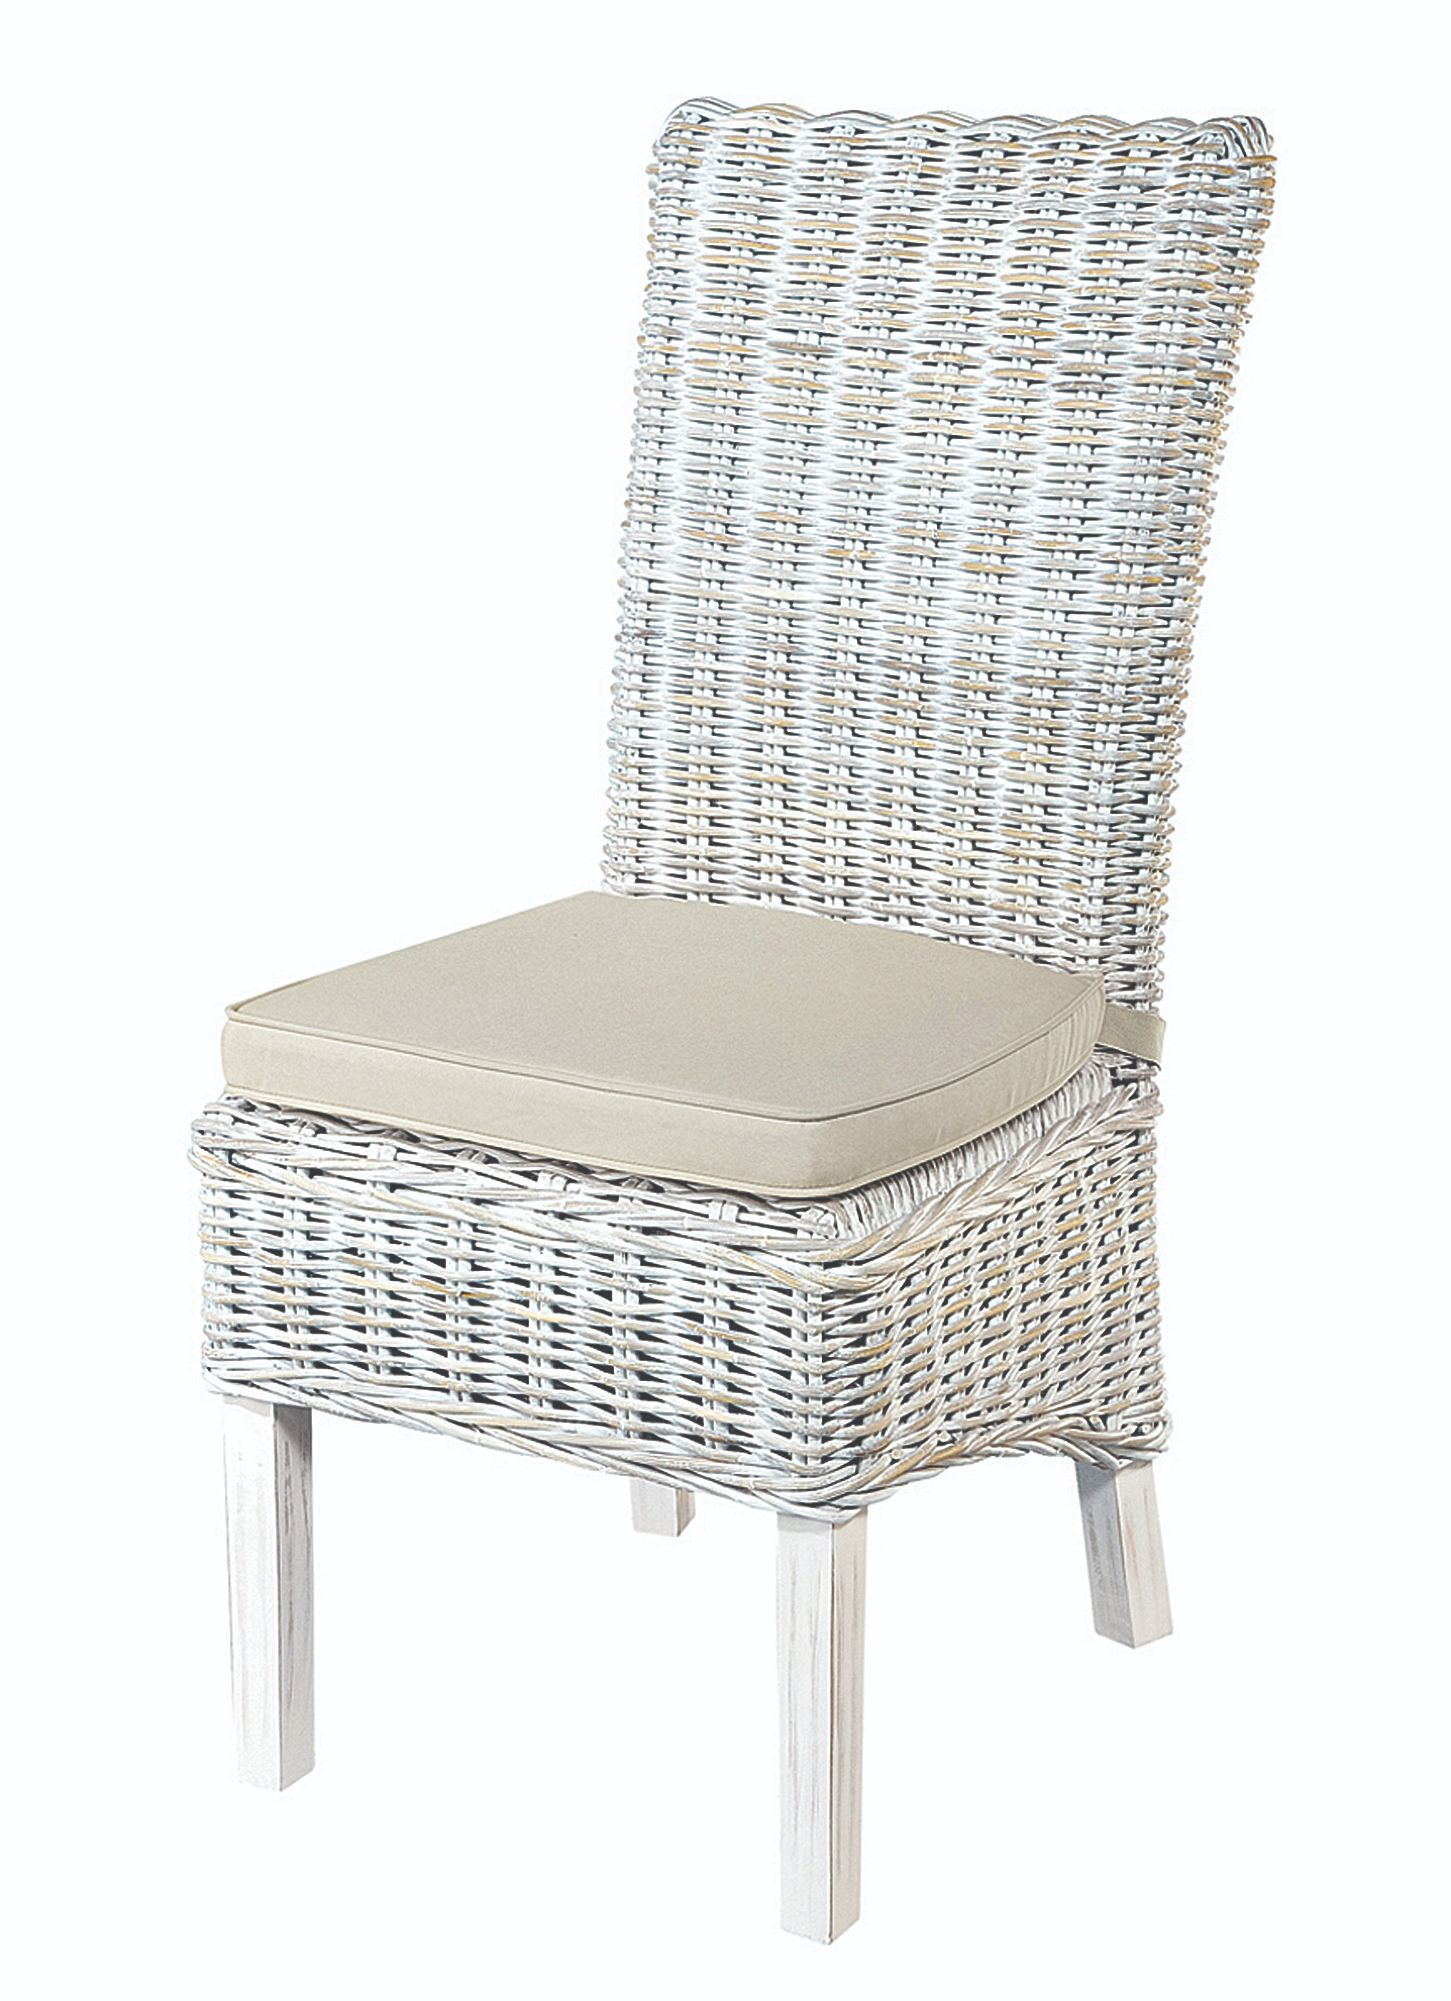 MAYA DINING CHAIR White Wash Rattan